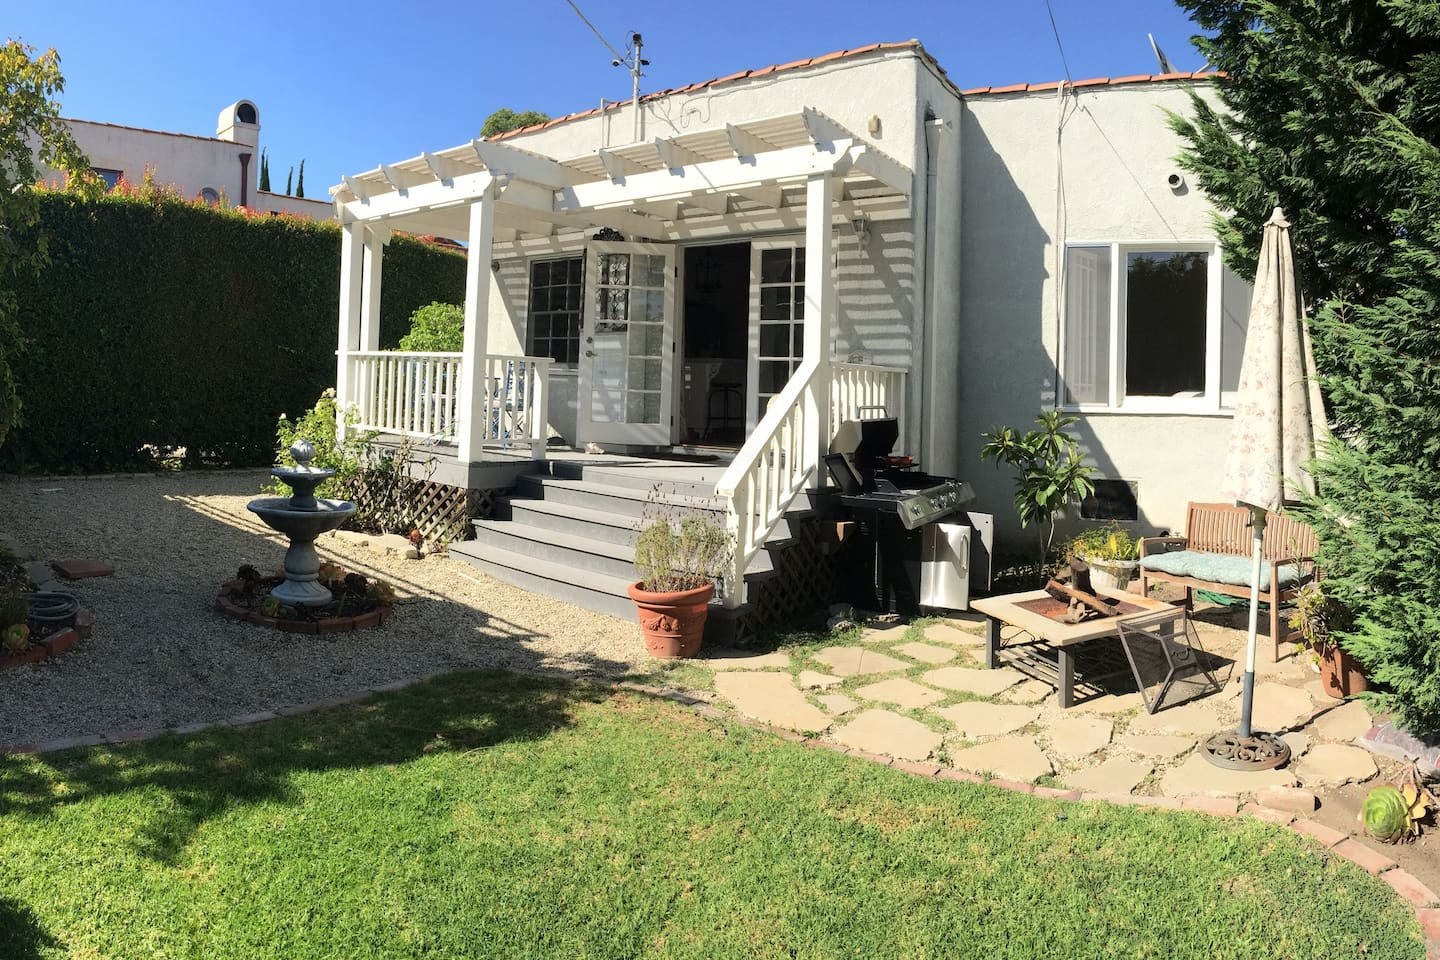 west la 21 house with chefs kitchen and gardens houses for rent in los angeles california united states - Chefs Kitchen 2